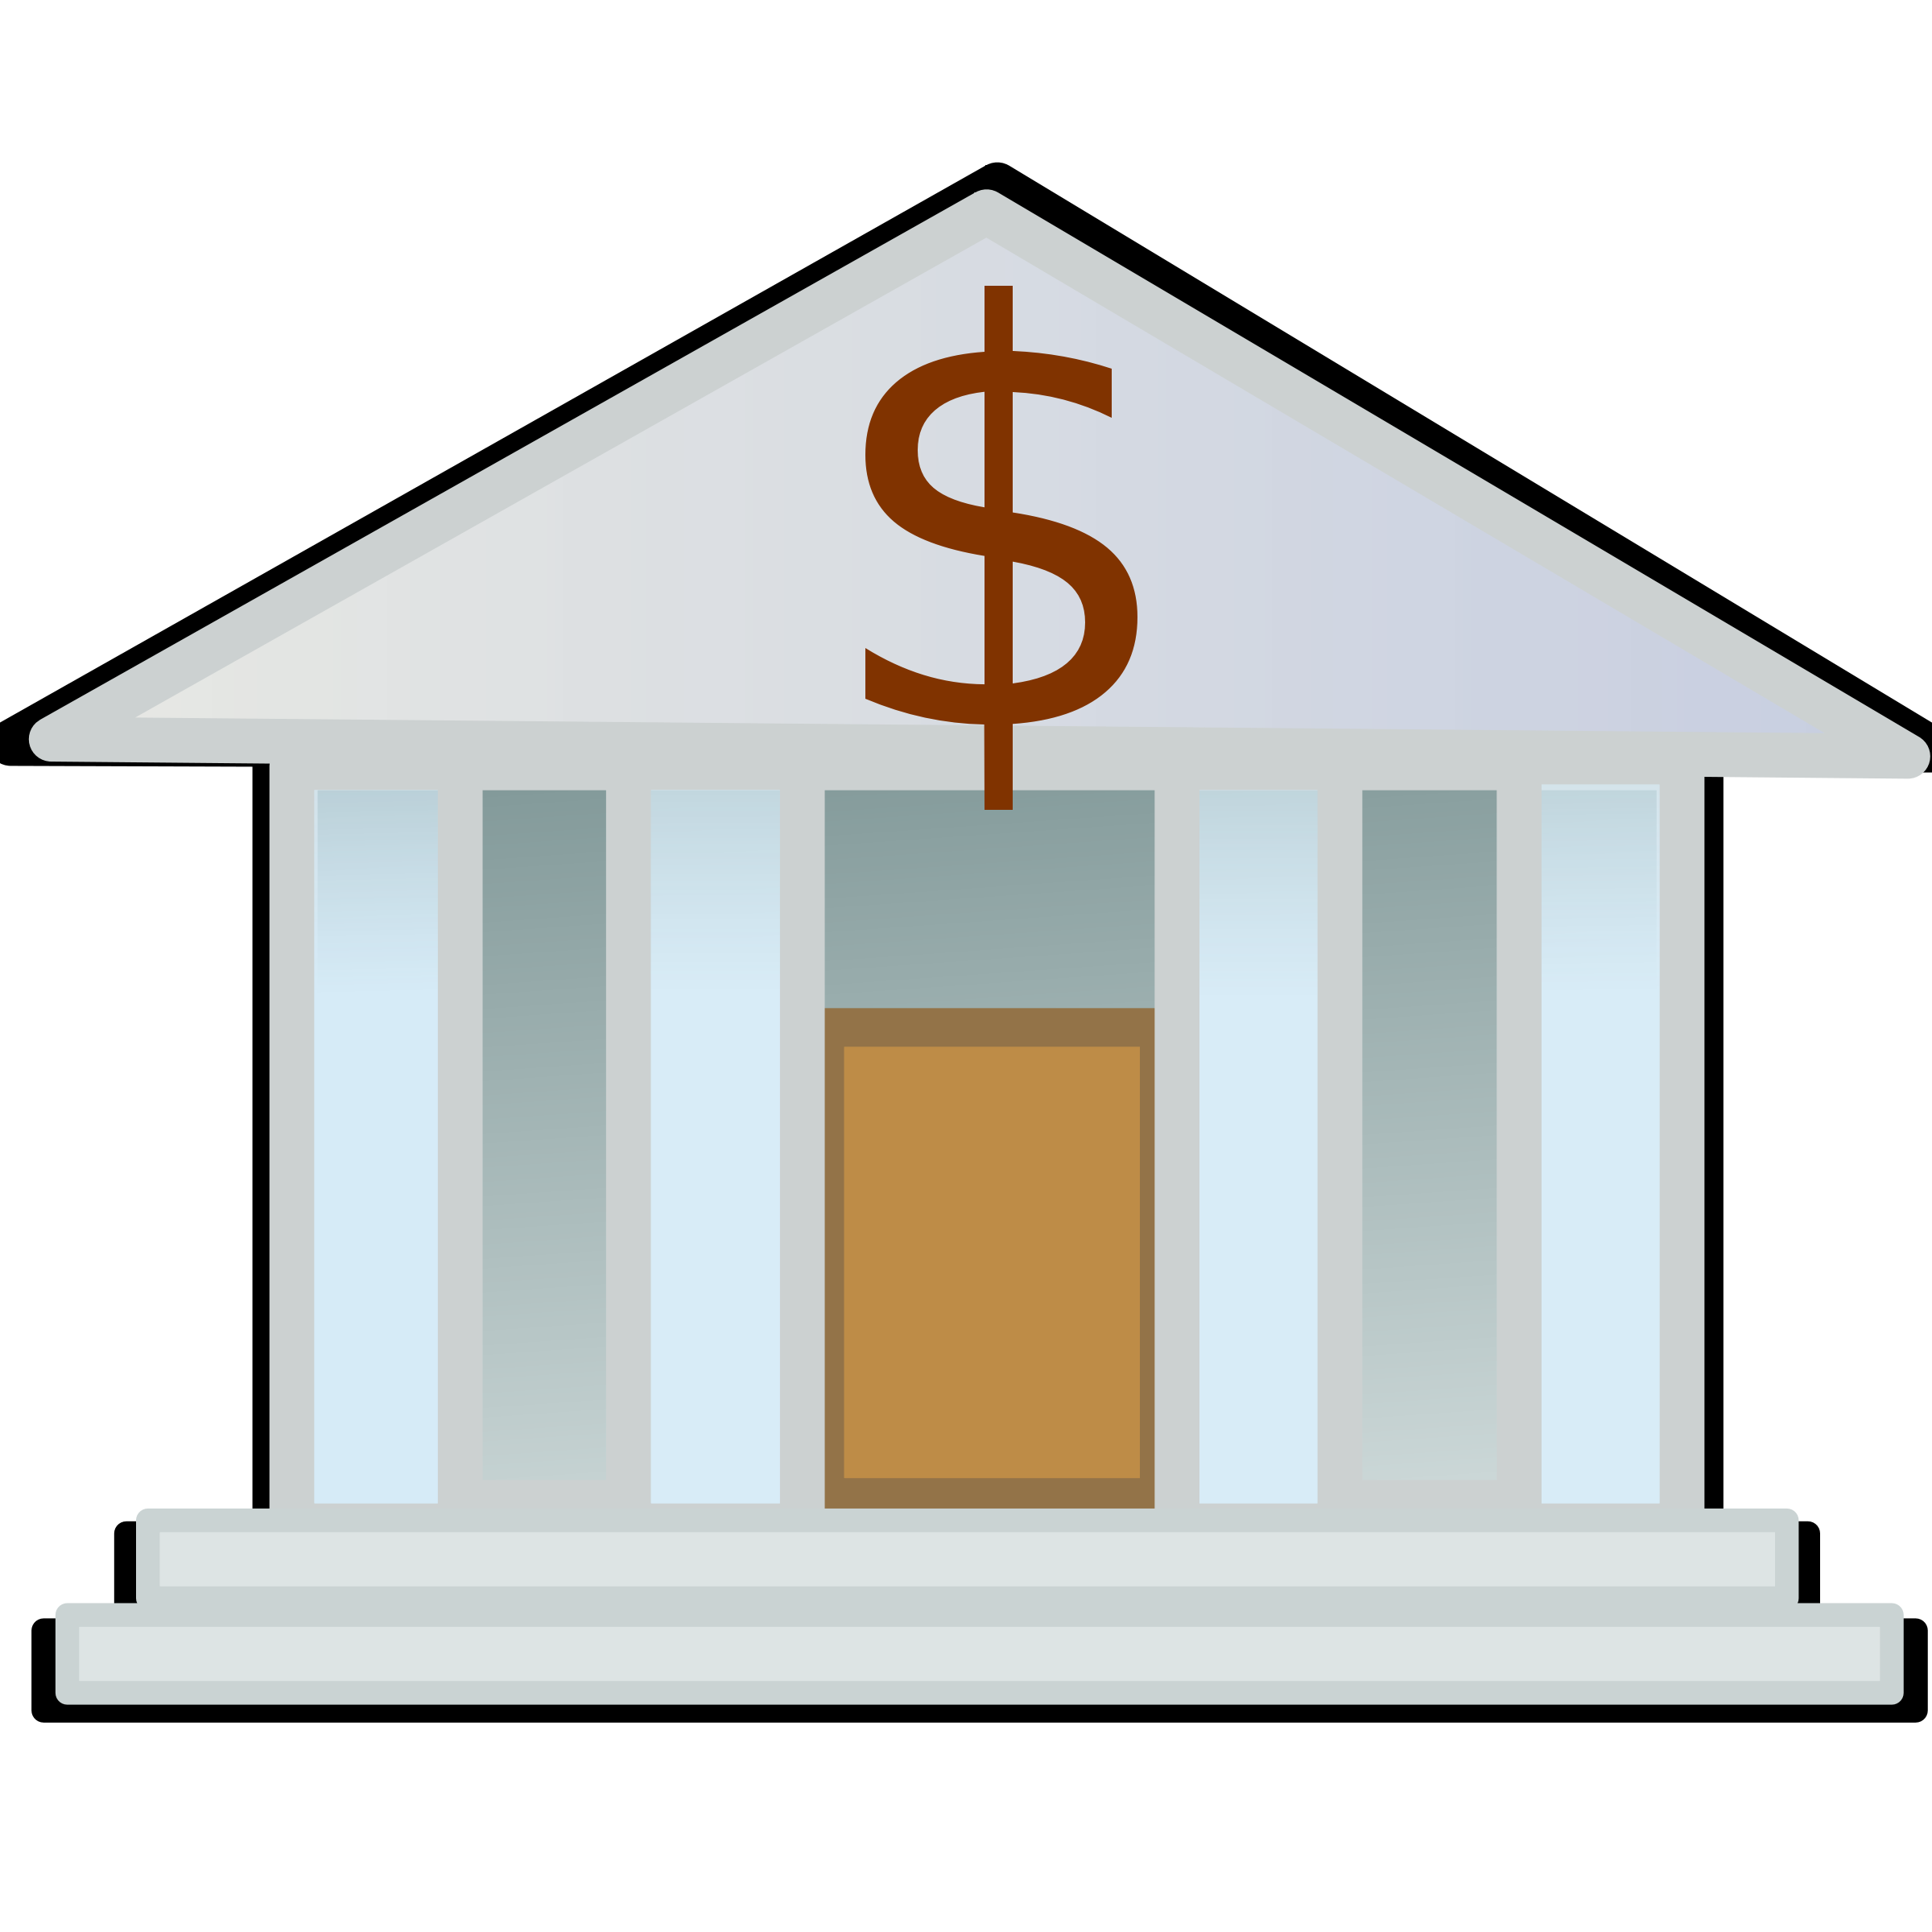 clipart bank teller - photo #18